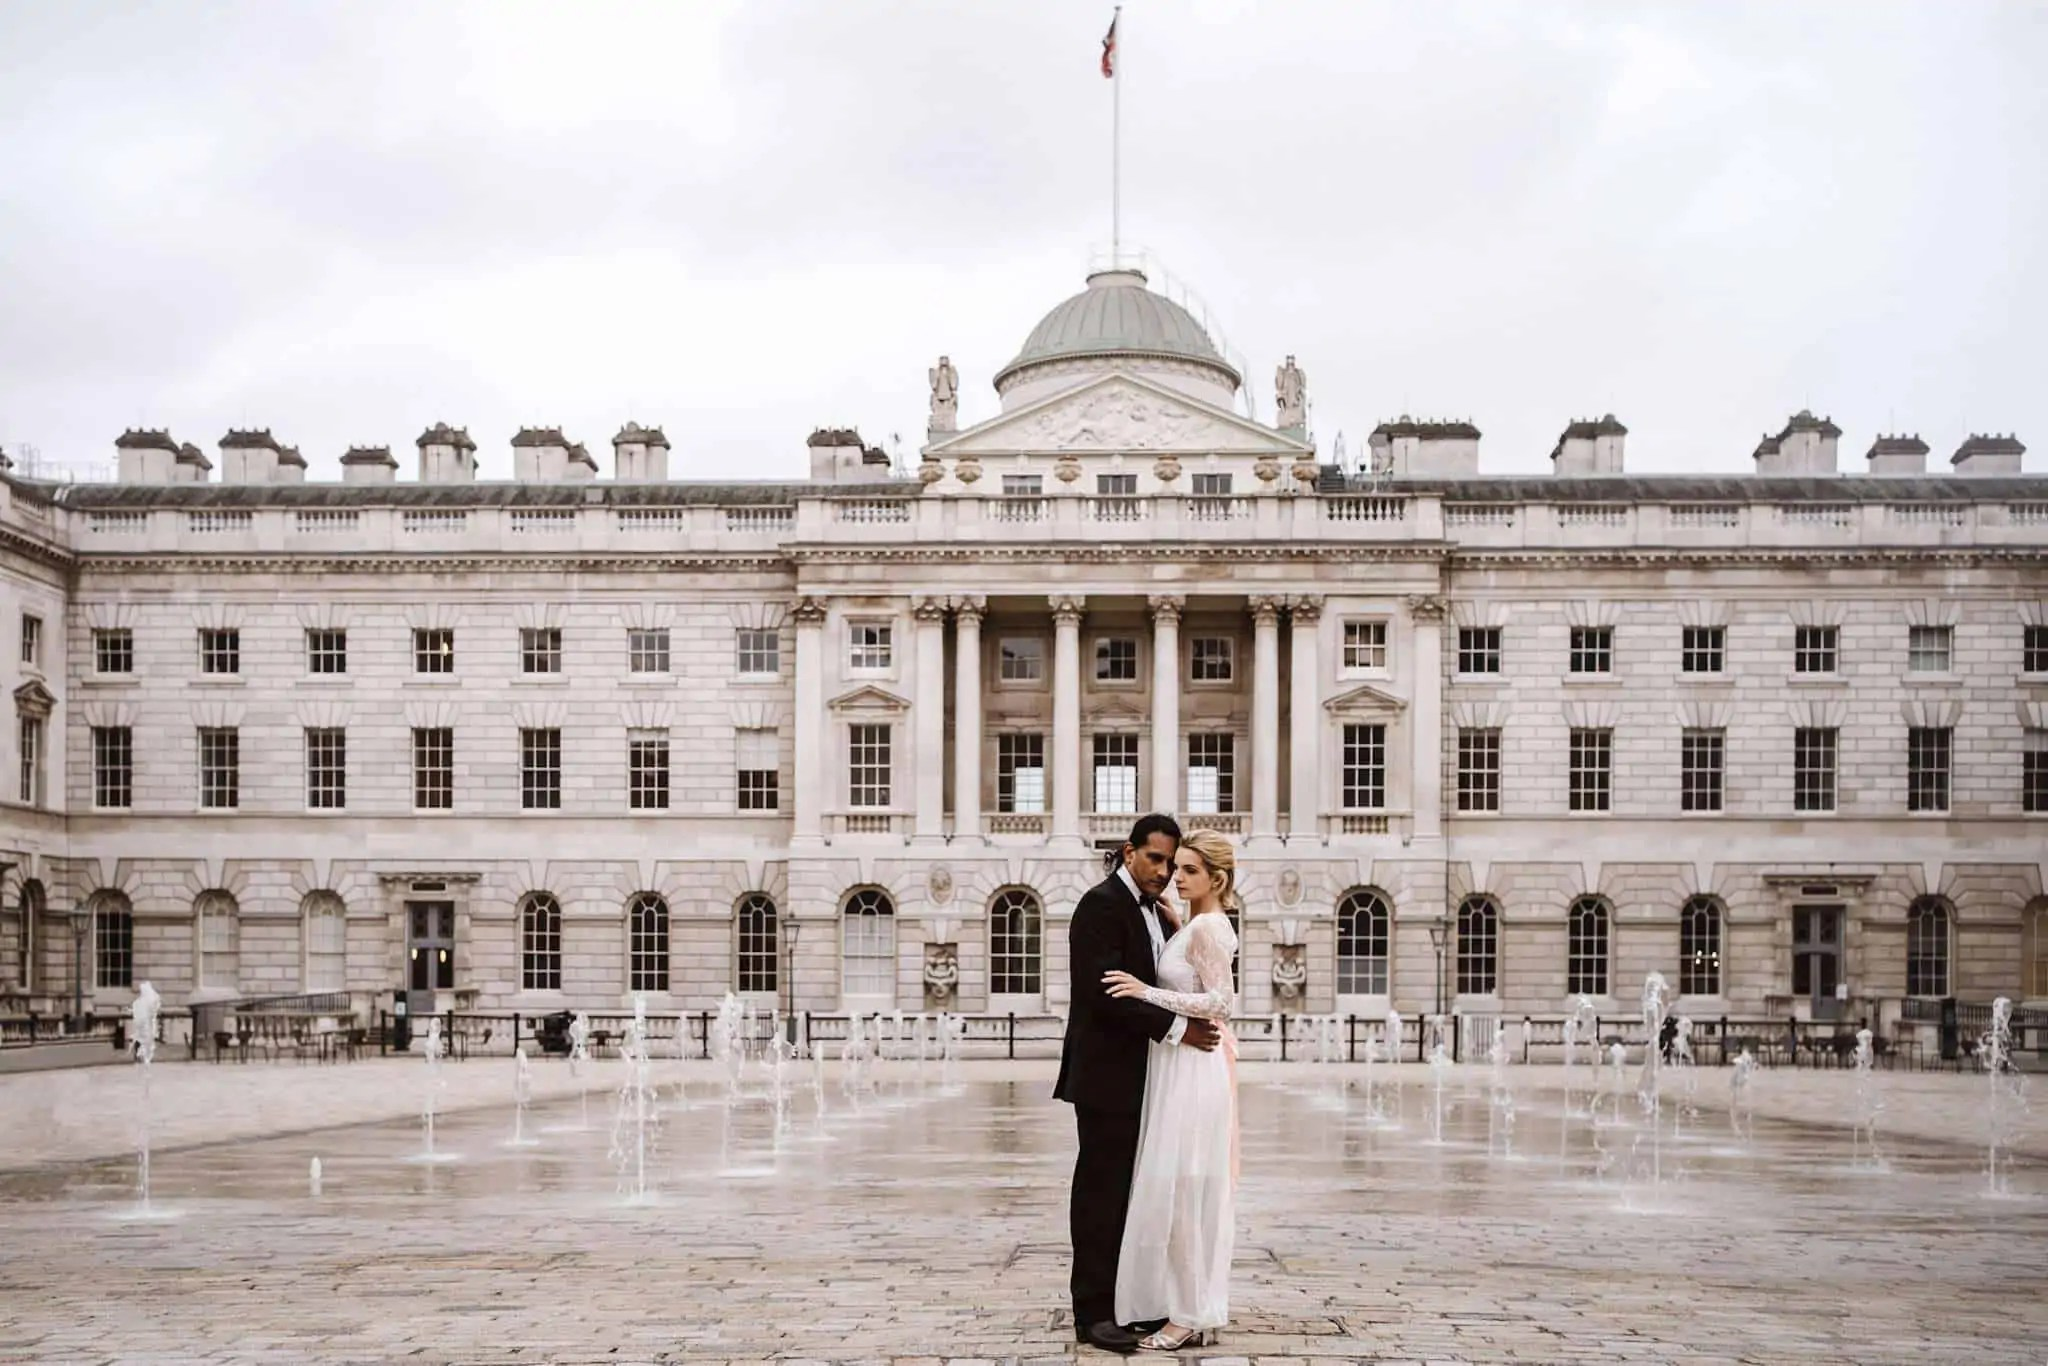 A bride and groom posing in front of Somerset House